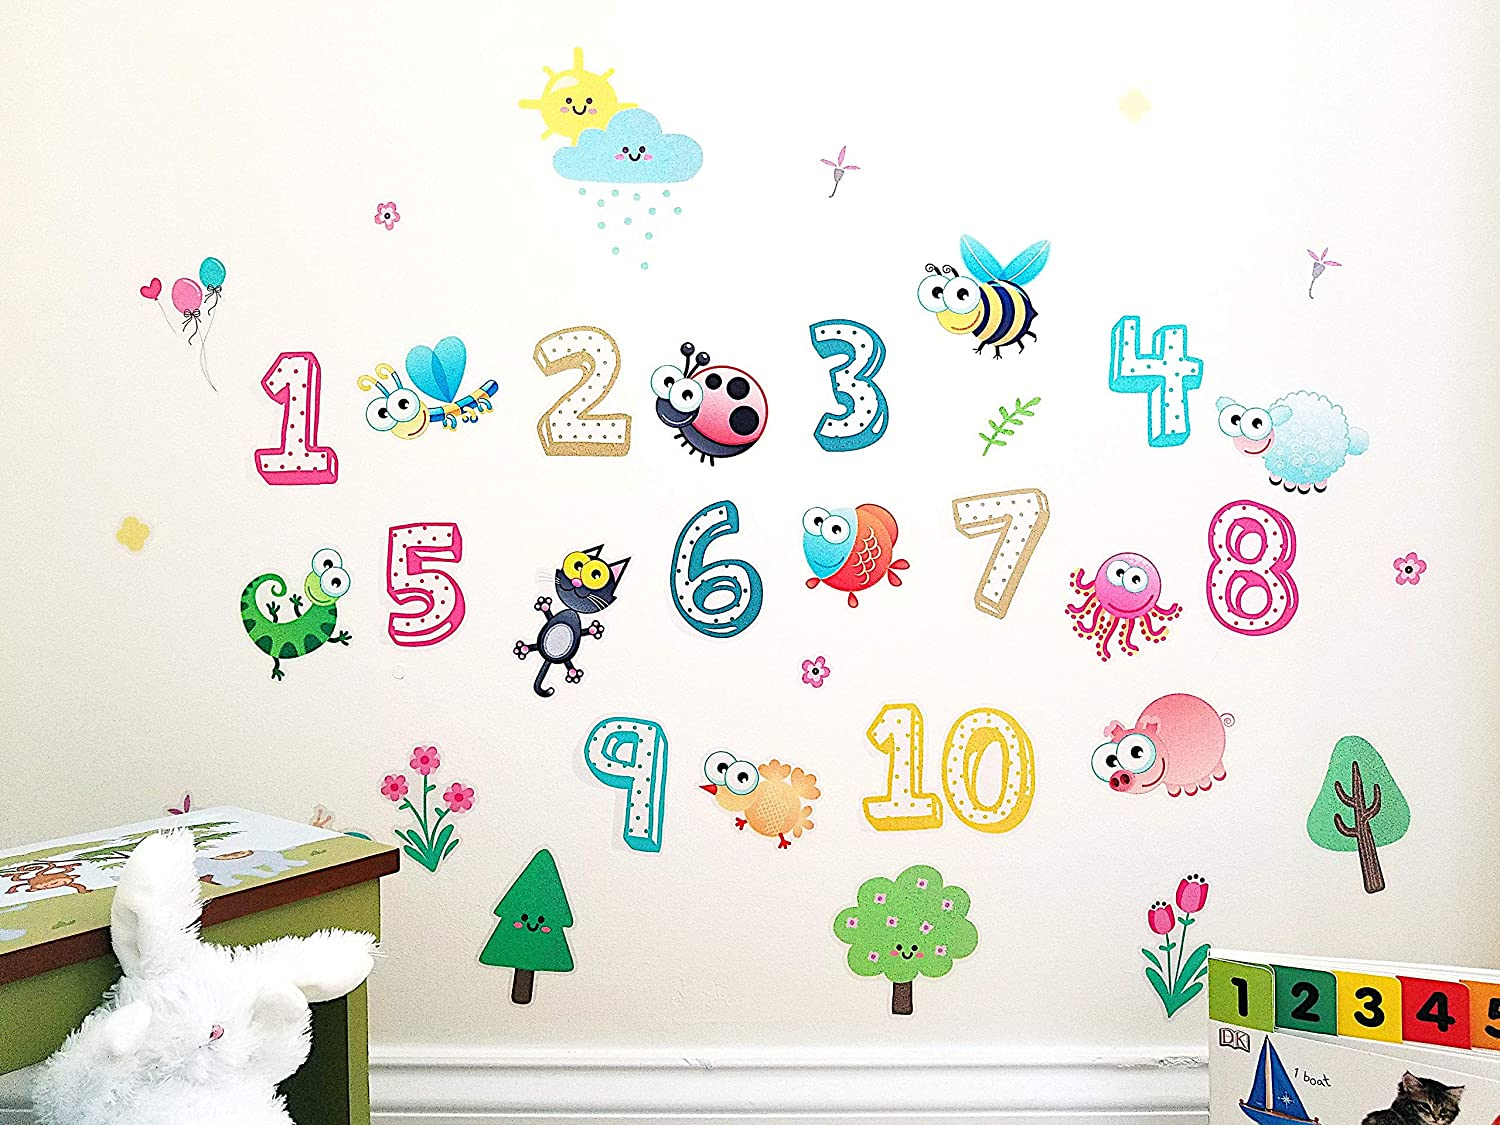 Numbers Three Kids Wall Decor Wall Decals Stickers for Nursery Solar System Planets Animals Removable and Waterproof Peel and Stick Vinyl Wall Decor for Bedroom Nursery Living Room 3D Learning LLF Insects